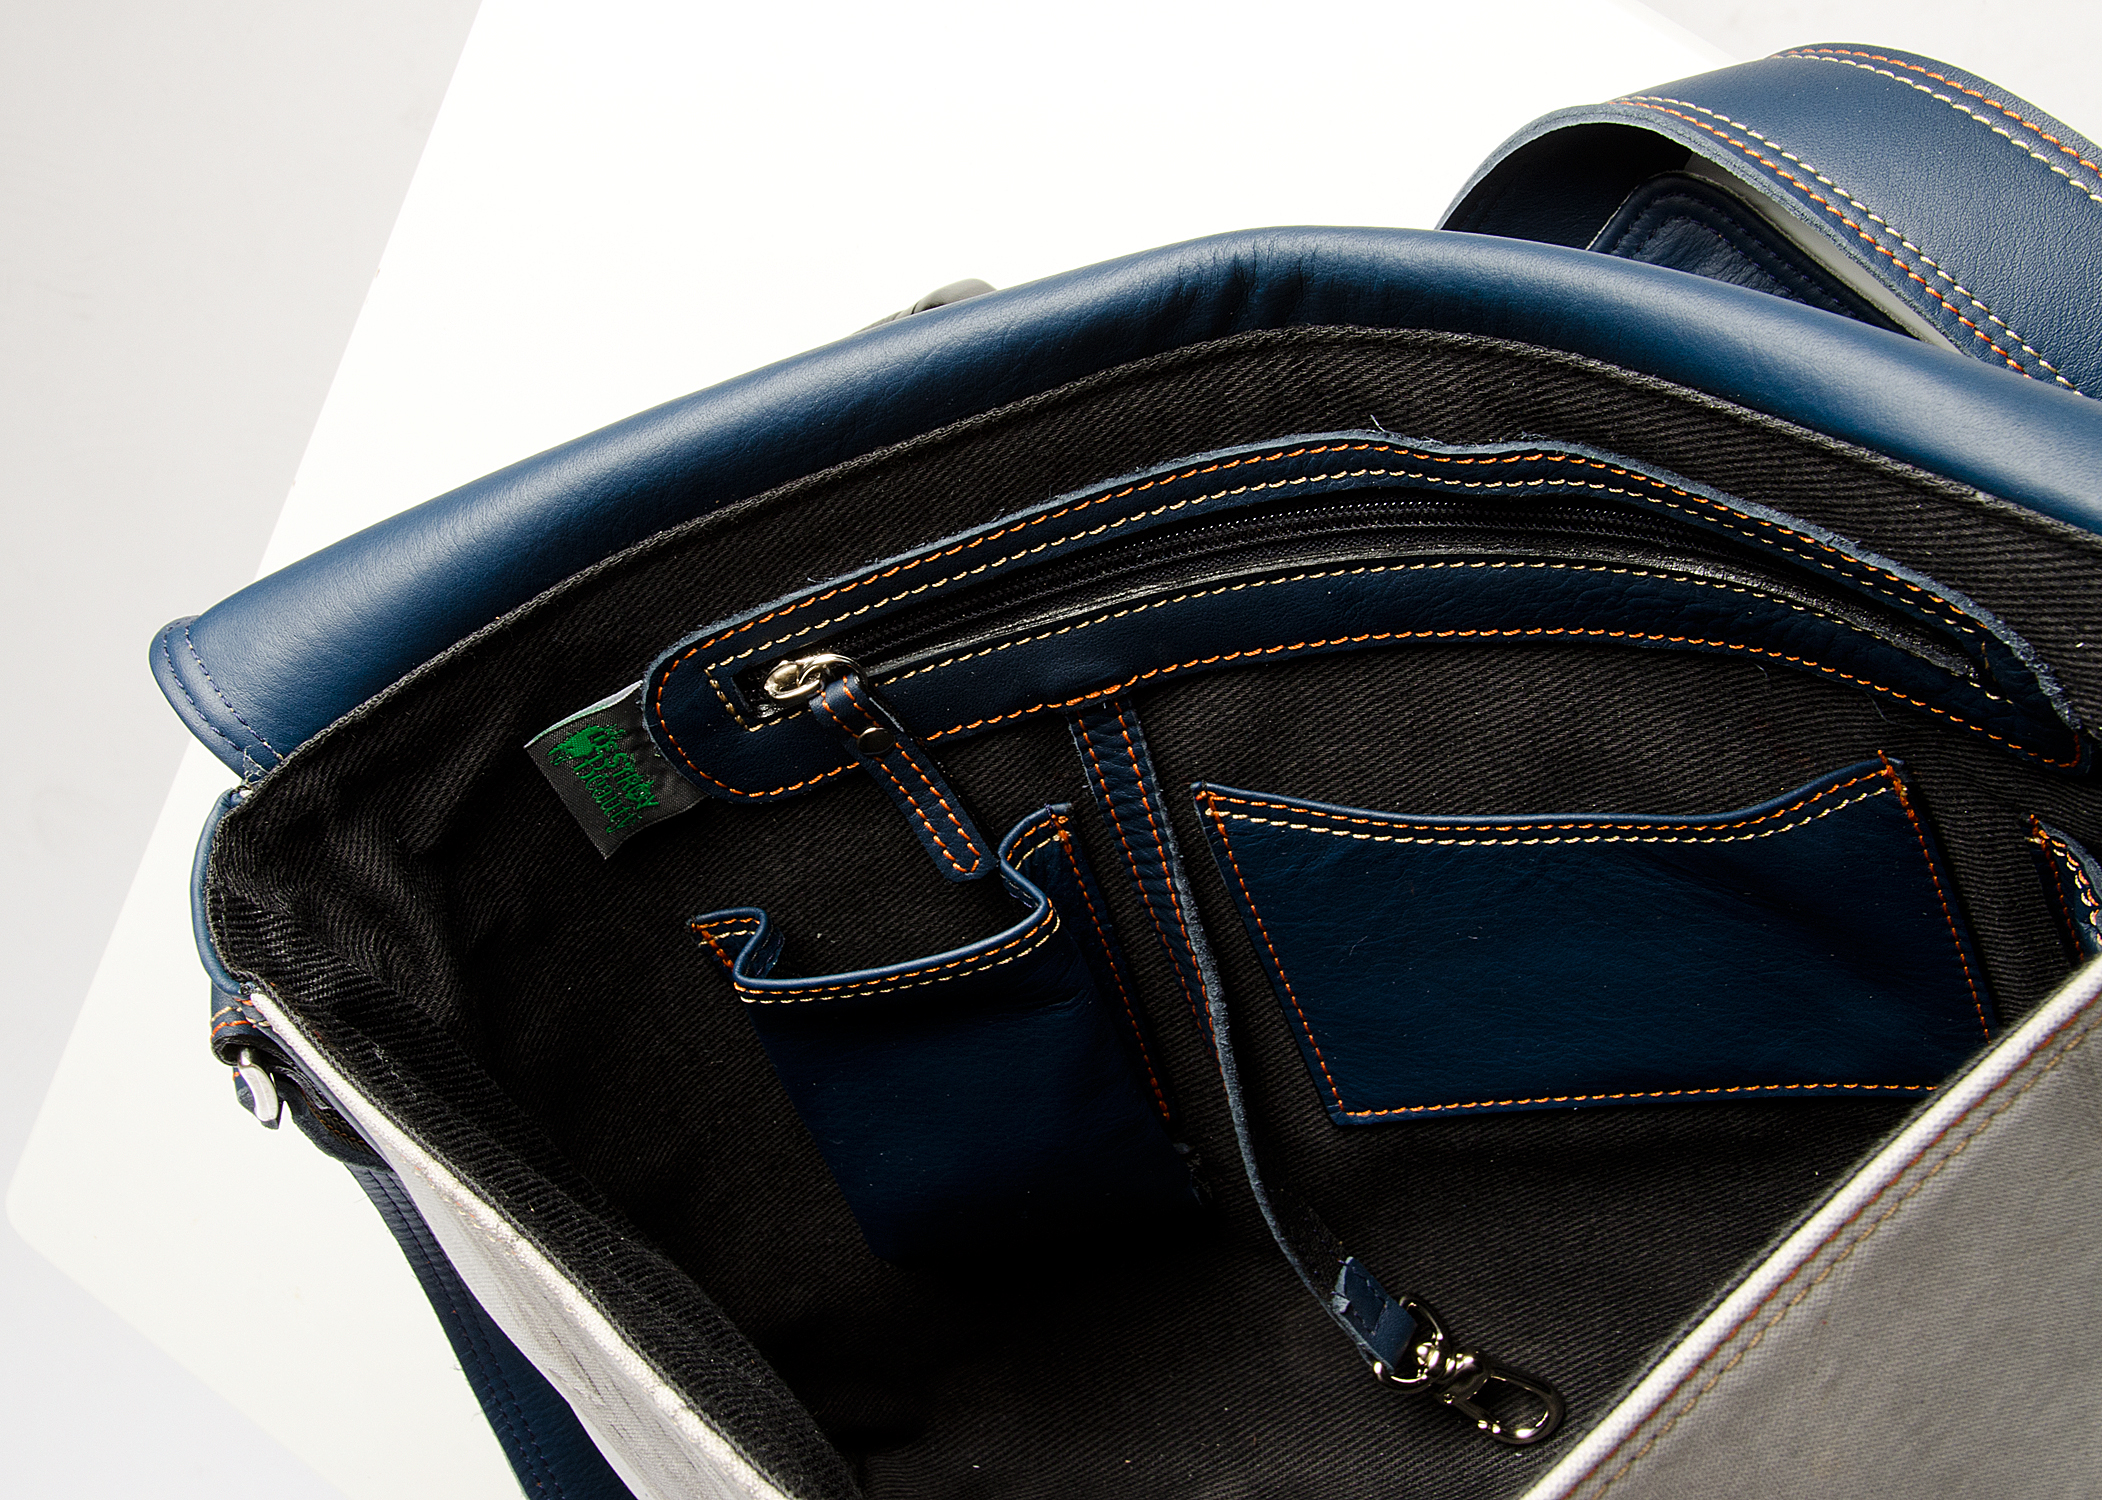 3 Messenger Bag - Interior.jpg